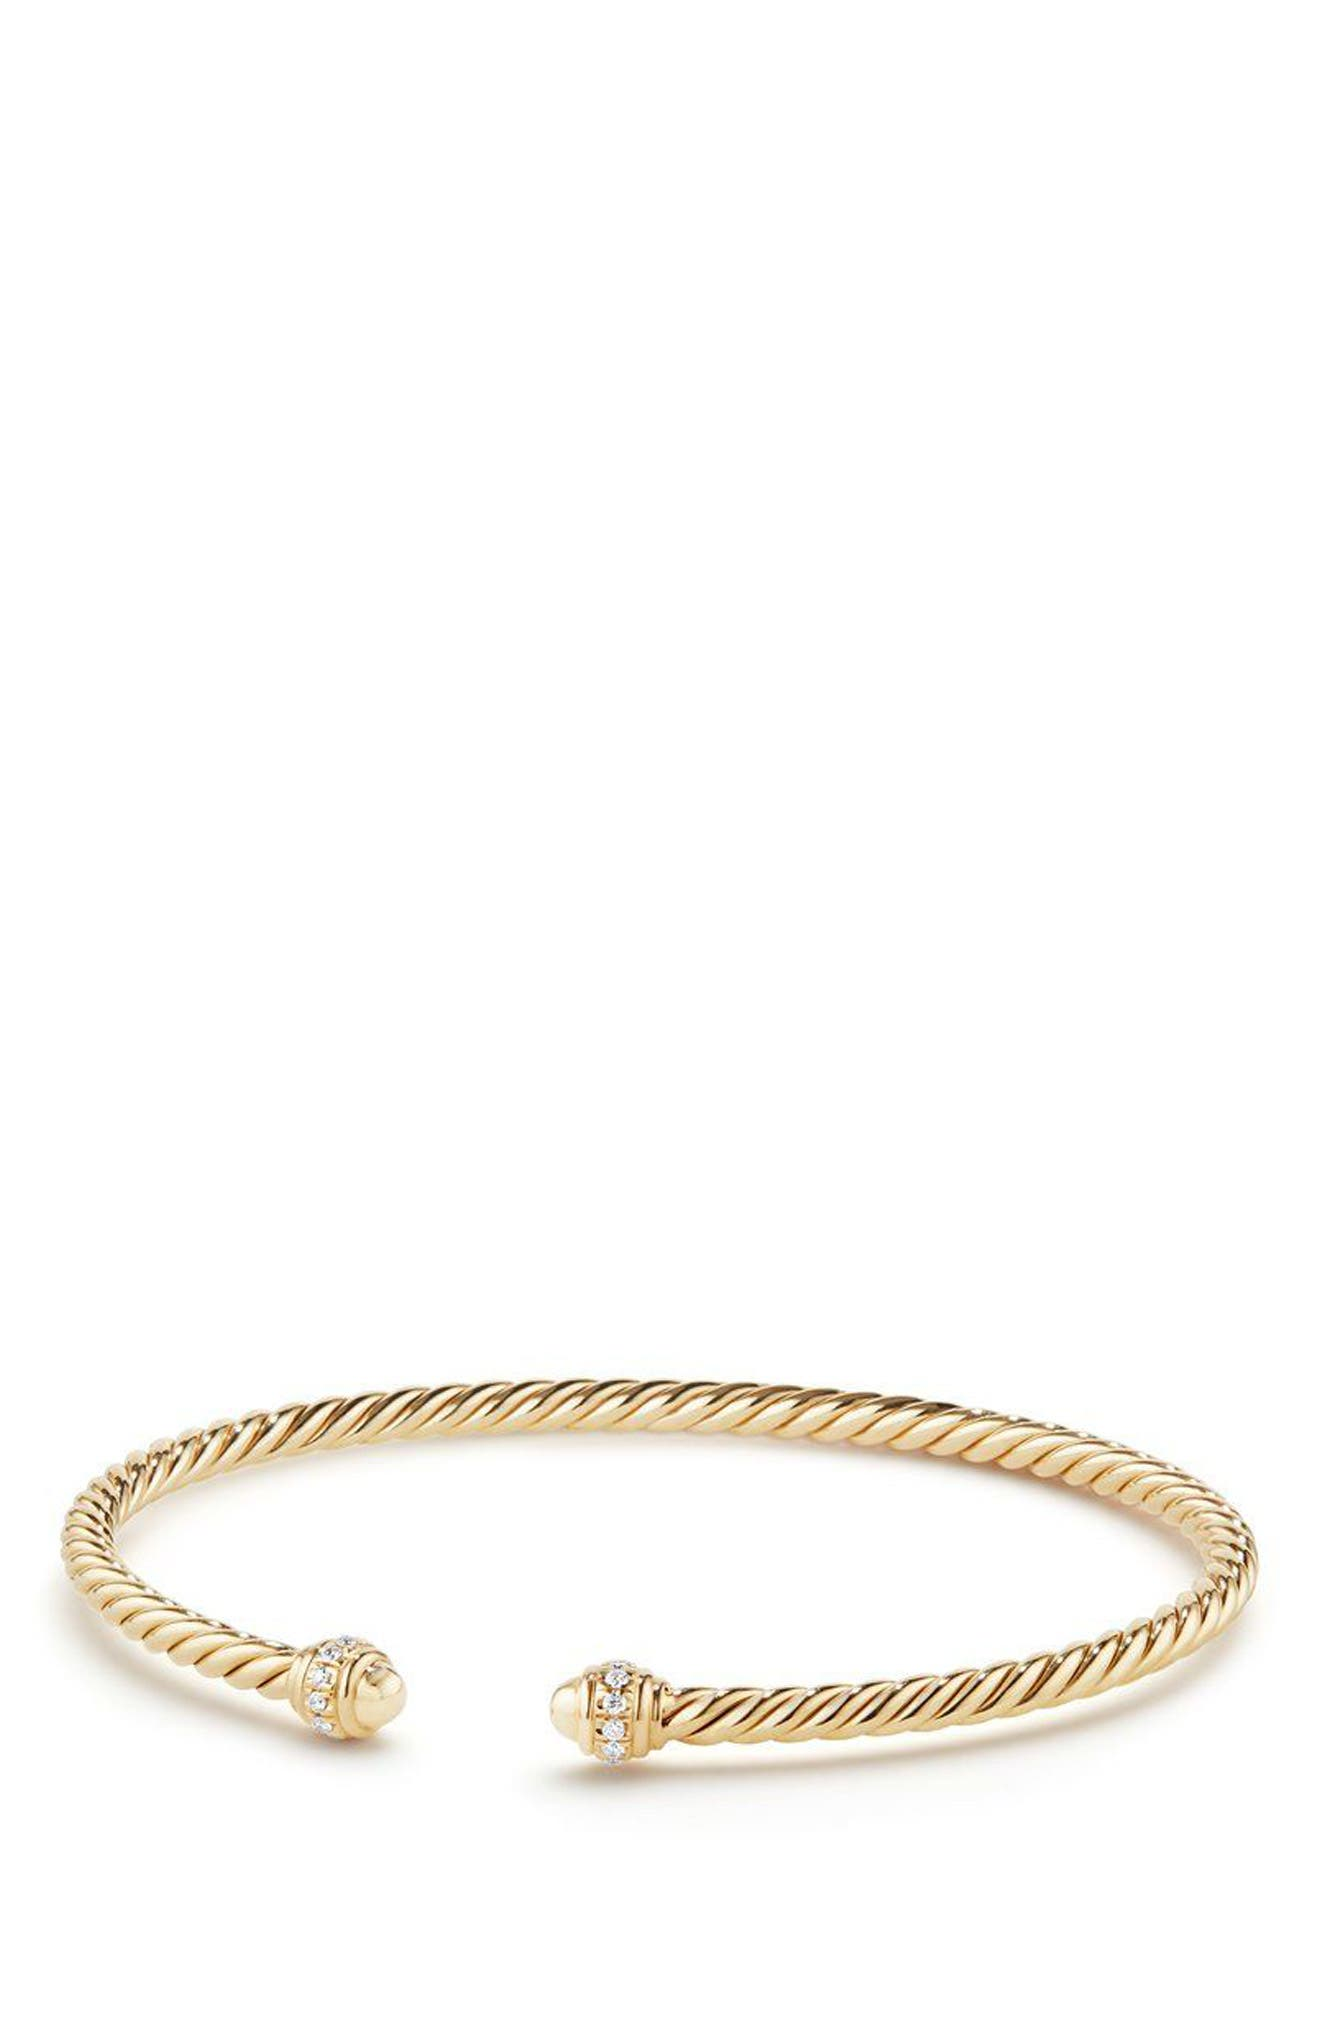 David Yurman Cable Spira Bracelet in 18K Gold with Diamonds, 3mm